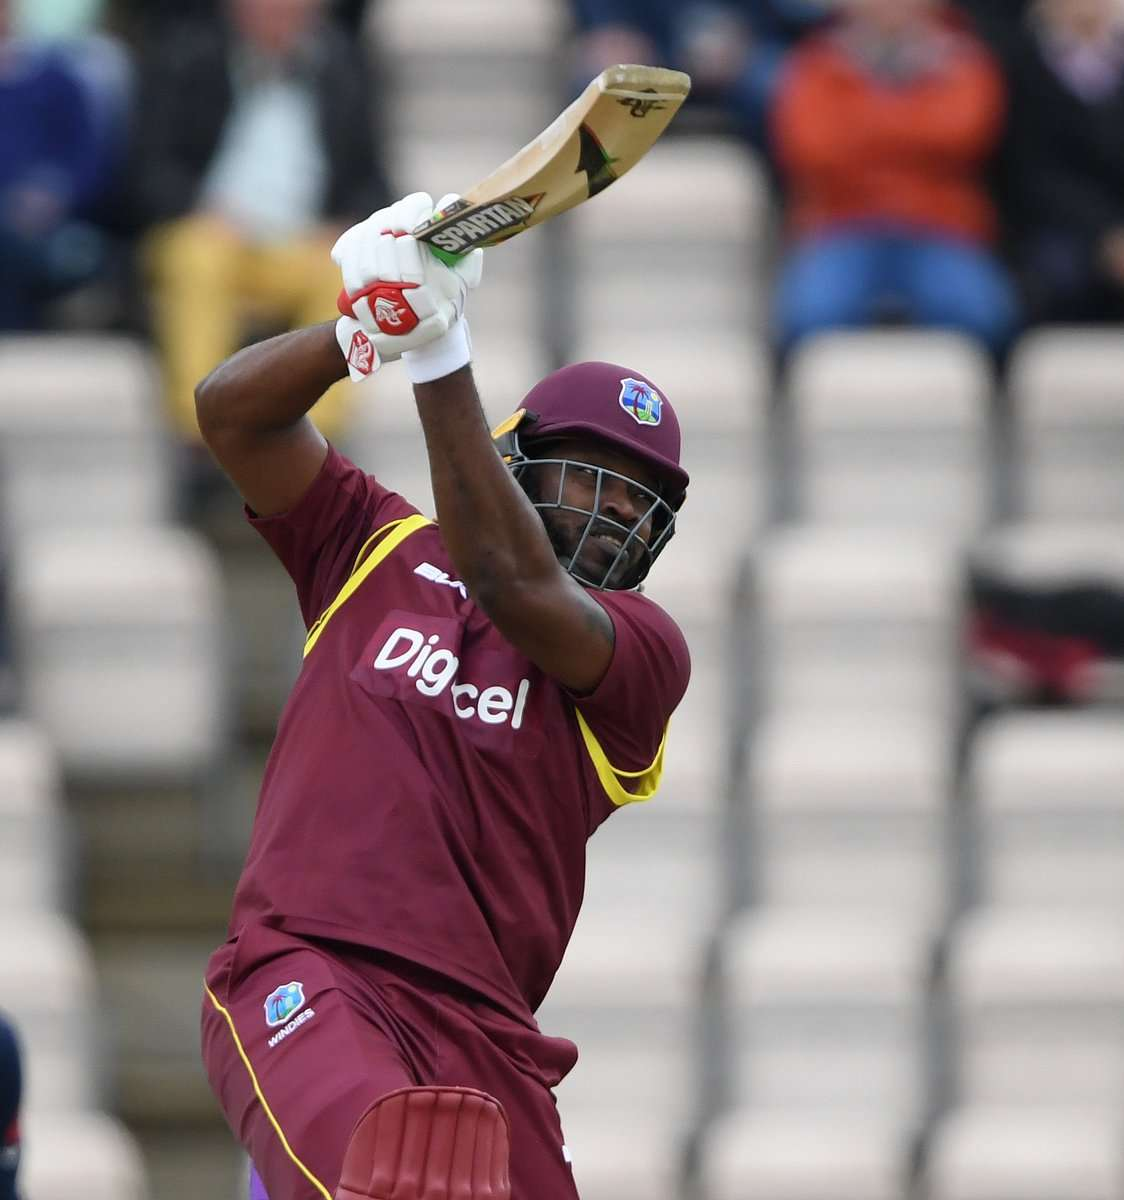 Chris Gayle has High Hopes Ahead of World Cup